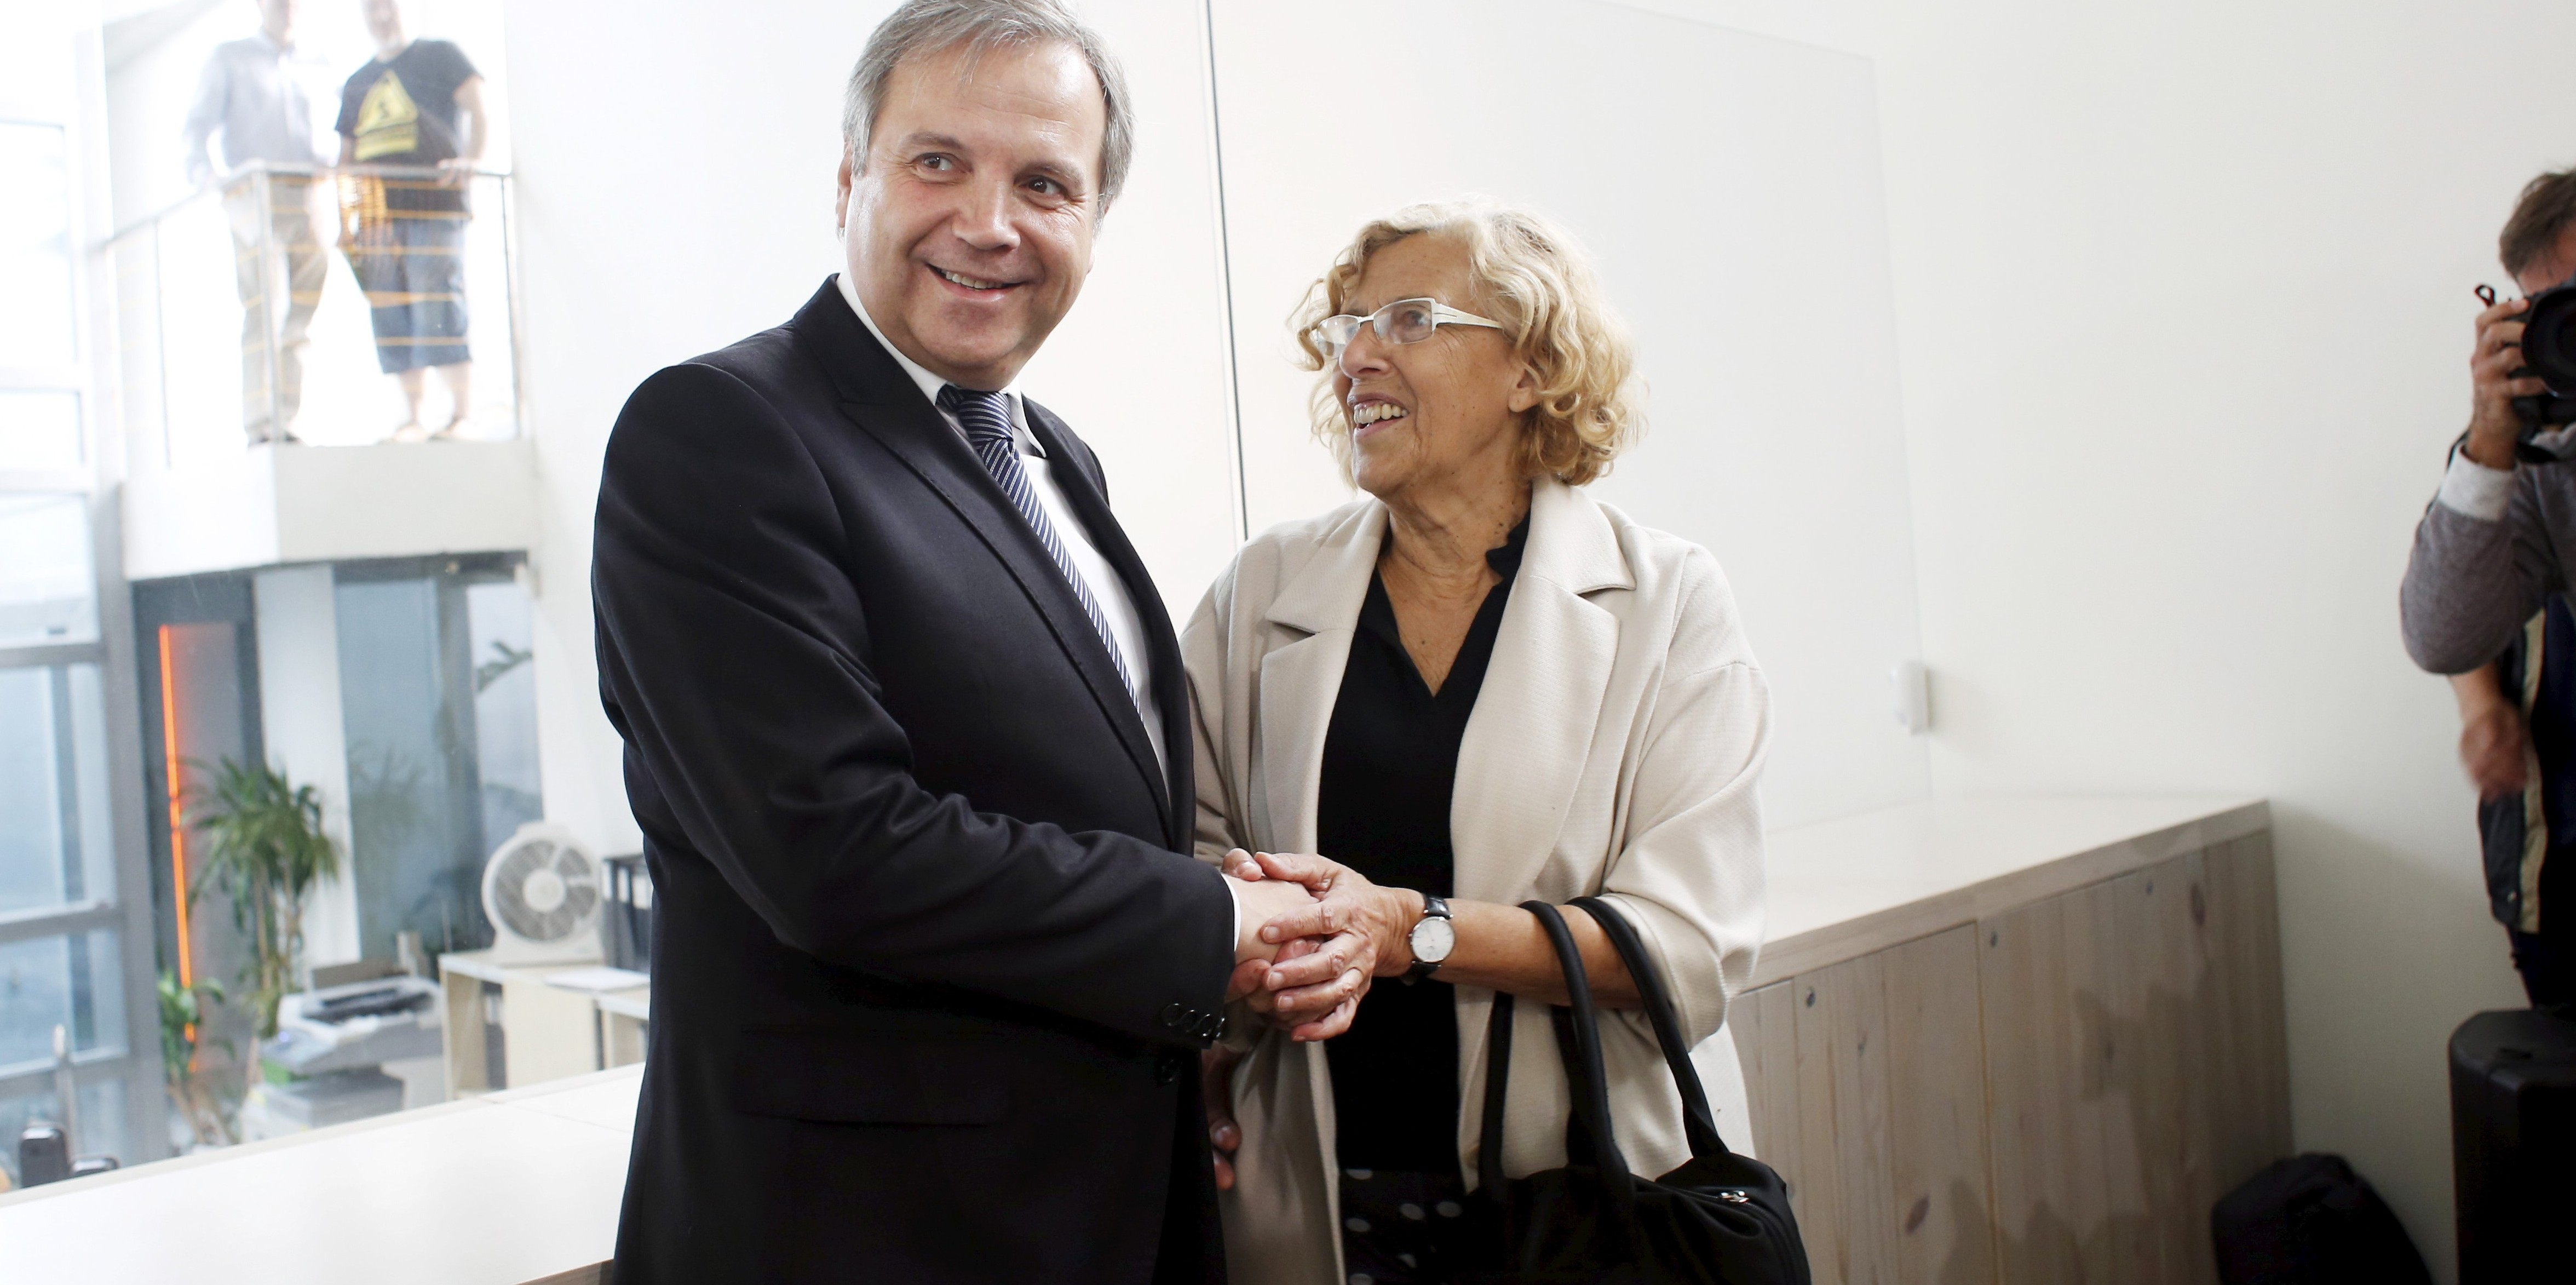 Ahora Madrid (Now Madrid) local candidate Manuela Carmena (C) and Socialist Party (PSOE) local candidate Antonio Miguel Carmona (L) hold hands as they pose at the start of a news conference in Madrid, Spain, June 12, 2015. Manuela Carmena, 71, cut a deal with the opposition Socialists to form a coalition administration. The left-wing former judge, backed by anti-austerity party Podemos, was named mayor of Spain's capital on Friday, ending 24 years of centre-right Popular Party (PP) rule in Madrid and delivering a setback to Prime Minister Mariano Rajoy. REUTERS/Susana Vera - RTX1G7QP